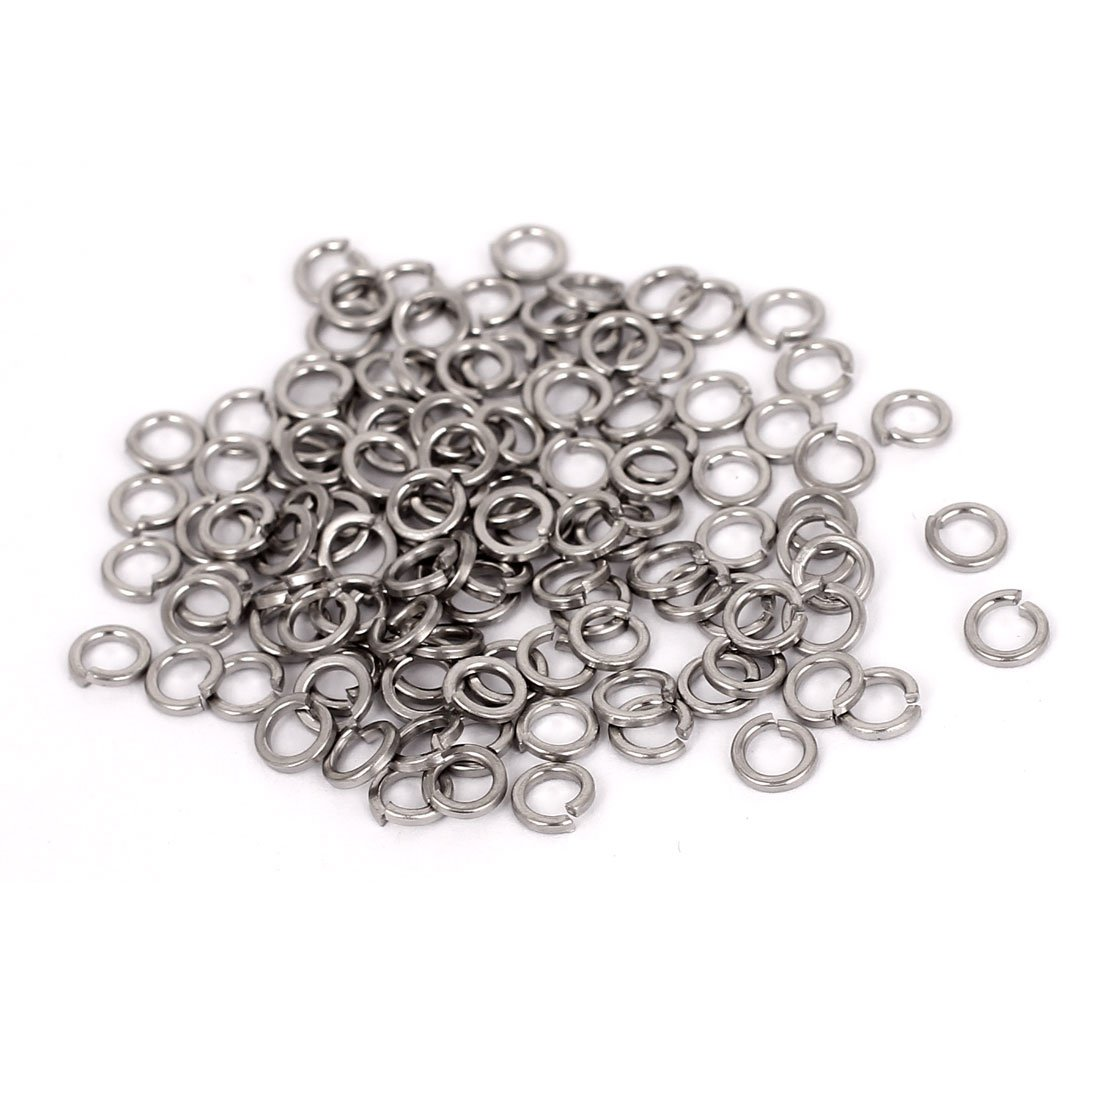 shop uxcell M3 304 Stainless Steel Split Ga Lock Now on sale Screw Spring Washers